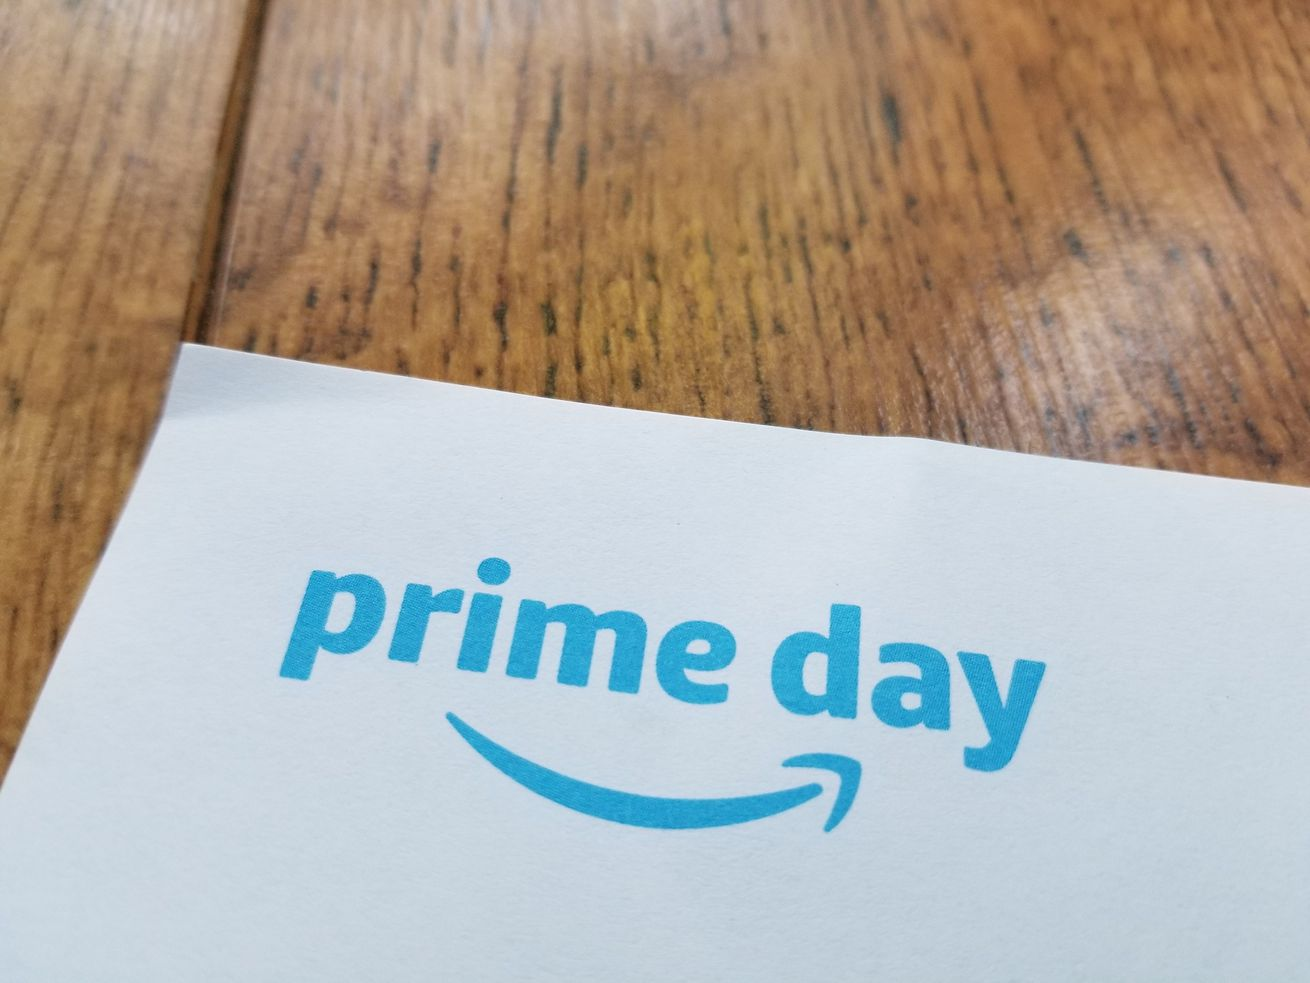 Amazon Prime Day, explained - The Reports